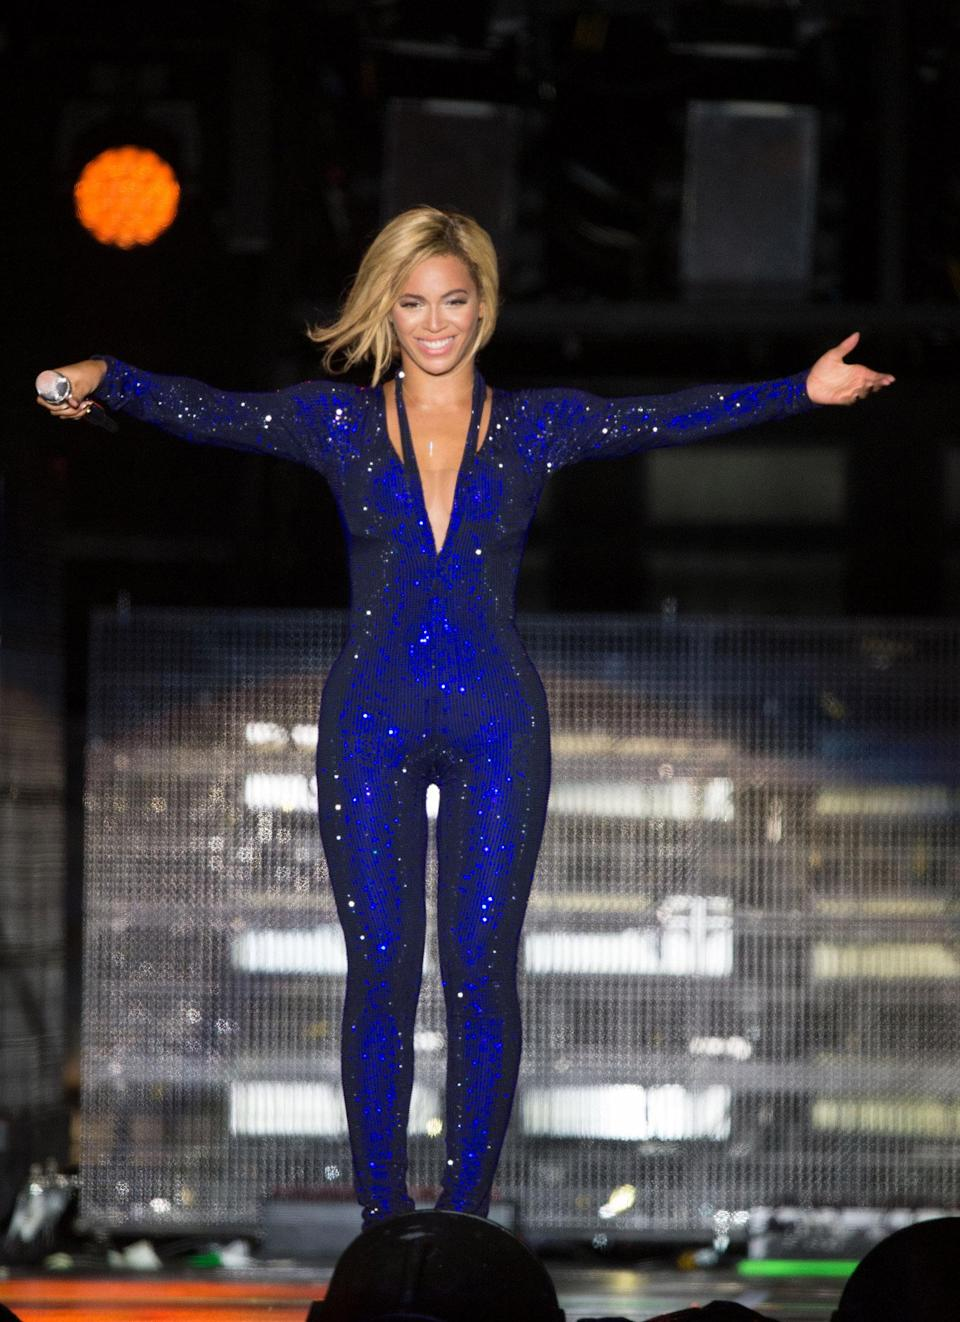 <p>Sparkly jumpsuits are nothing new. Queen Bey rocked one during a performance in England in 2013. (Photo: Samir Hussein/WireImage) </p>